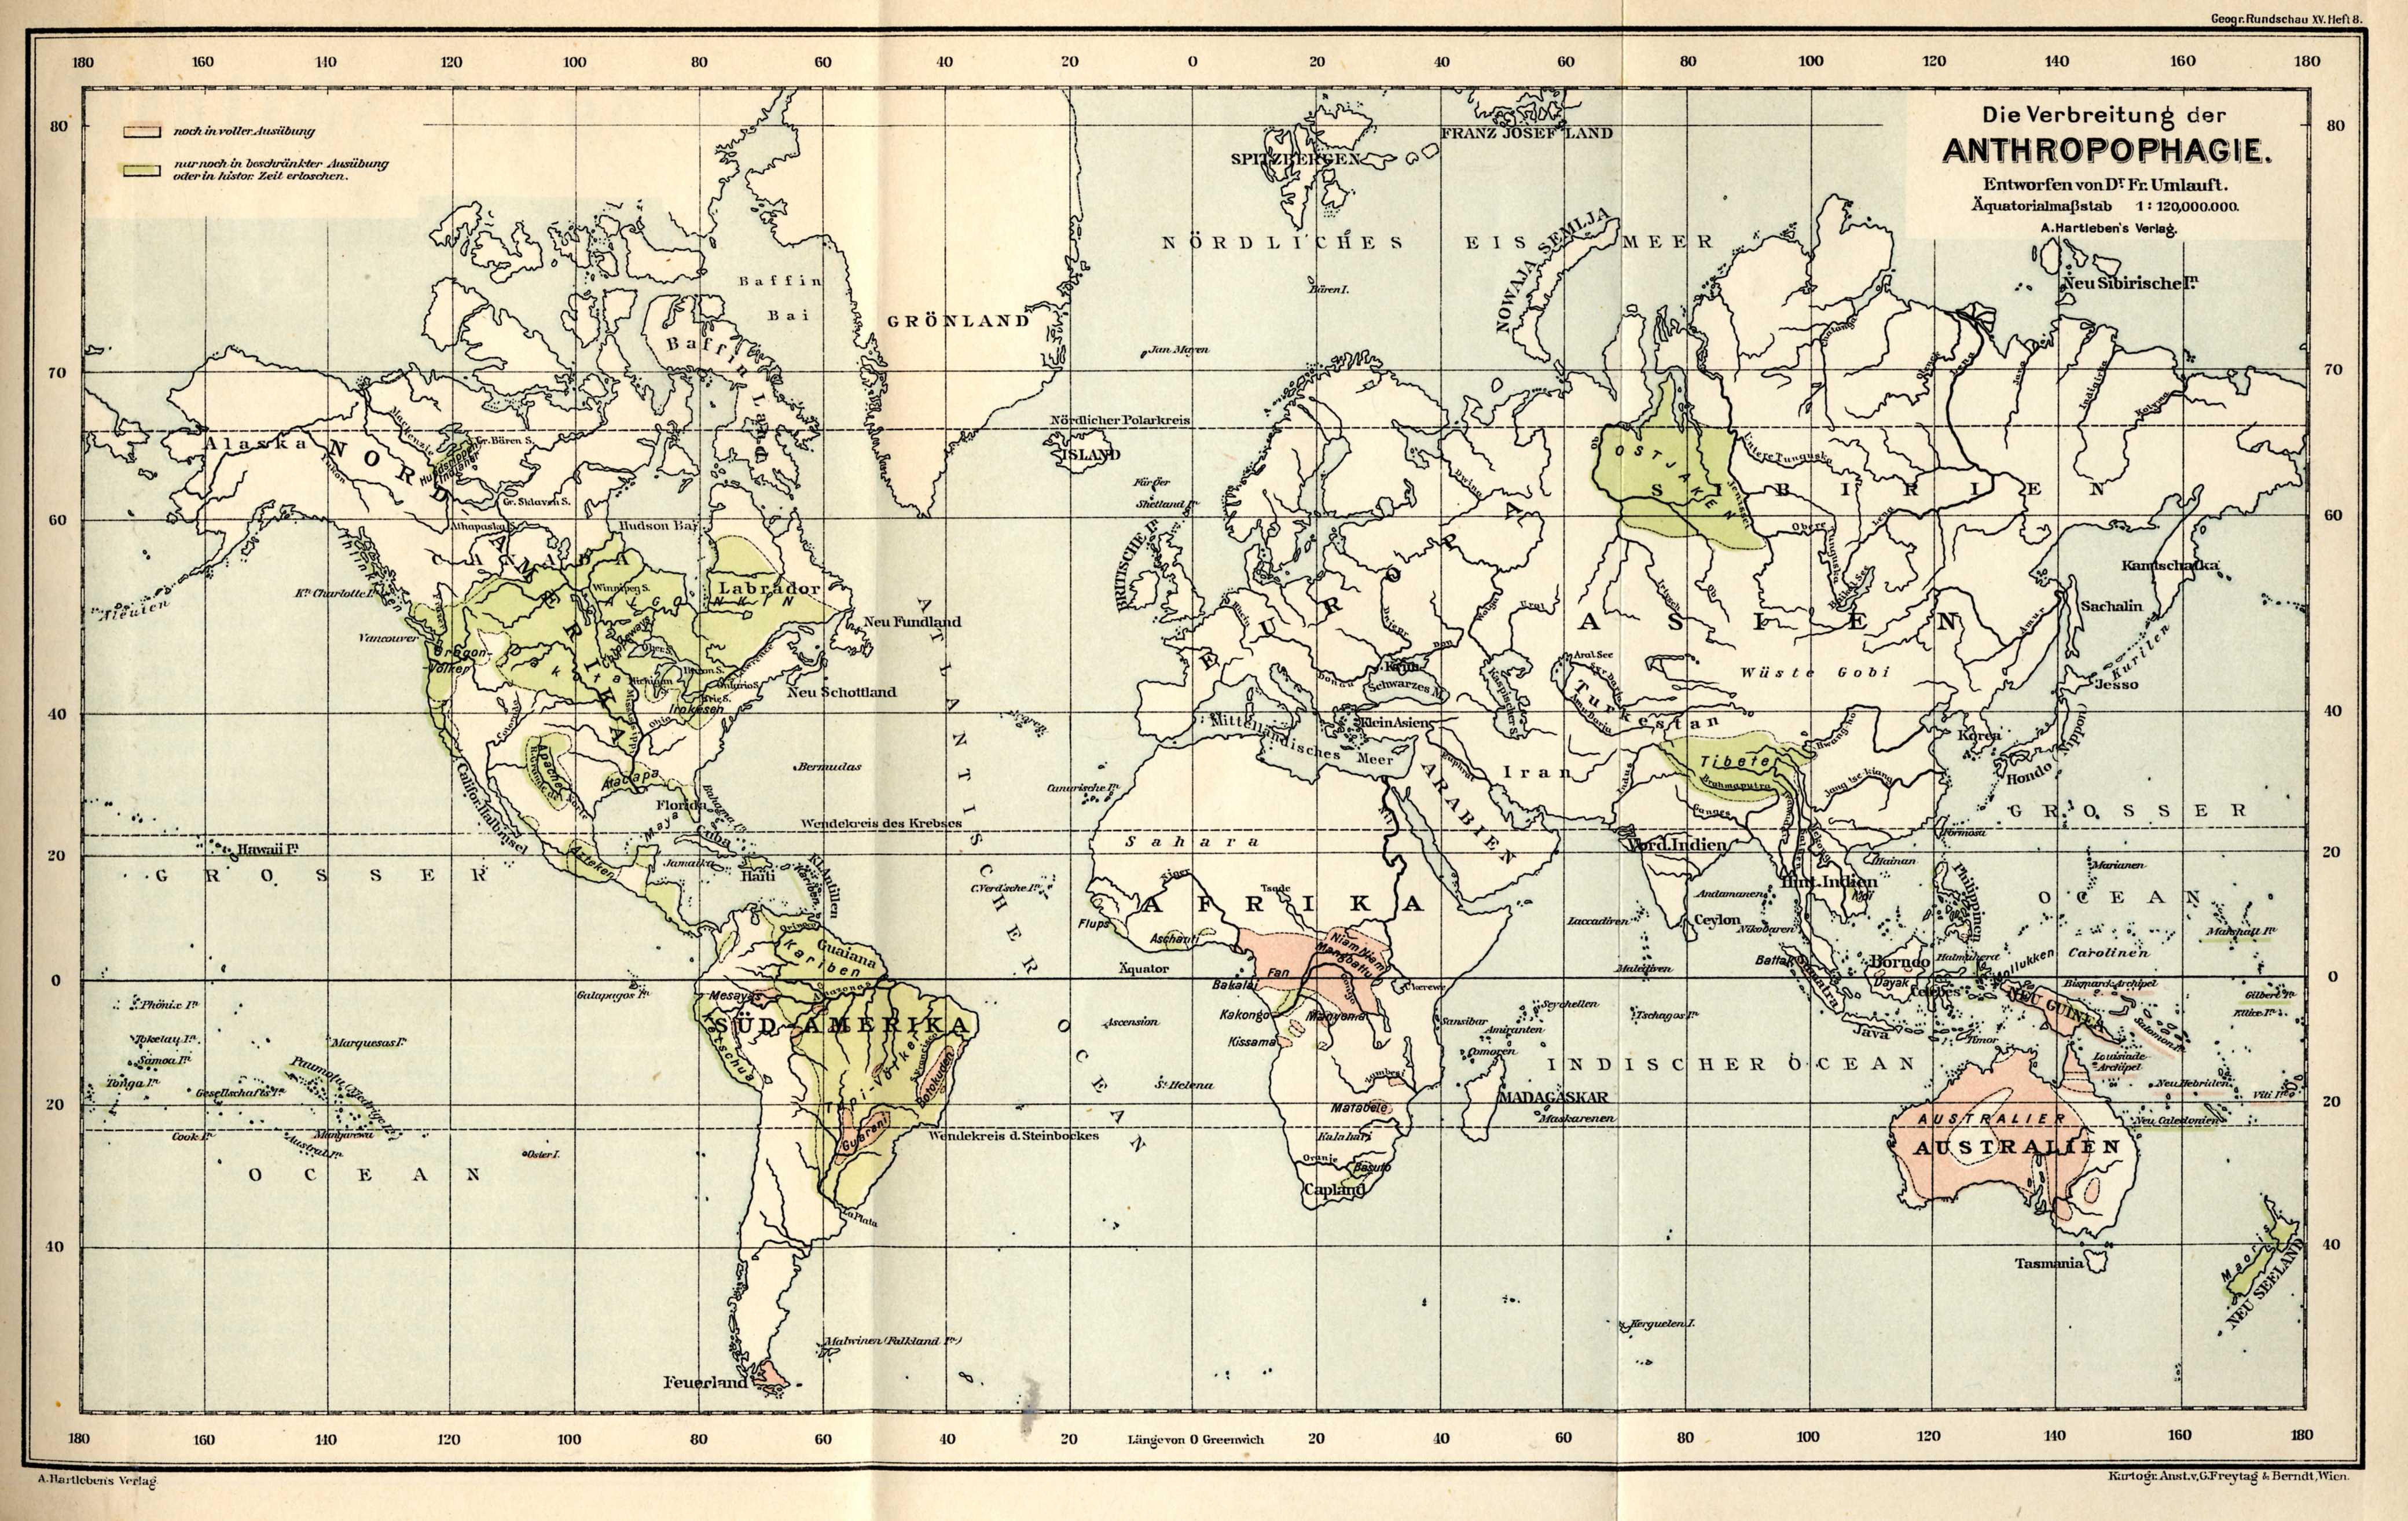 The Cannibal Map of the World (1893)